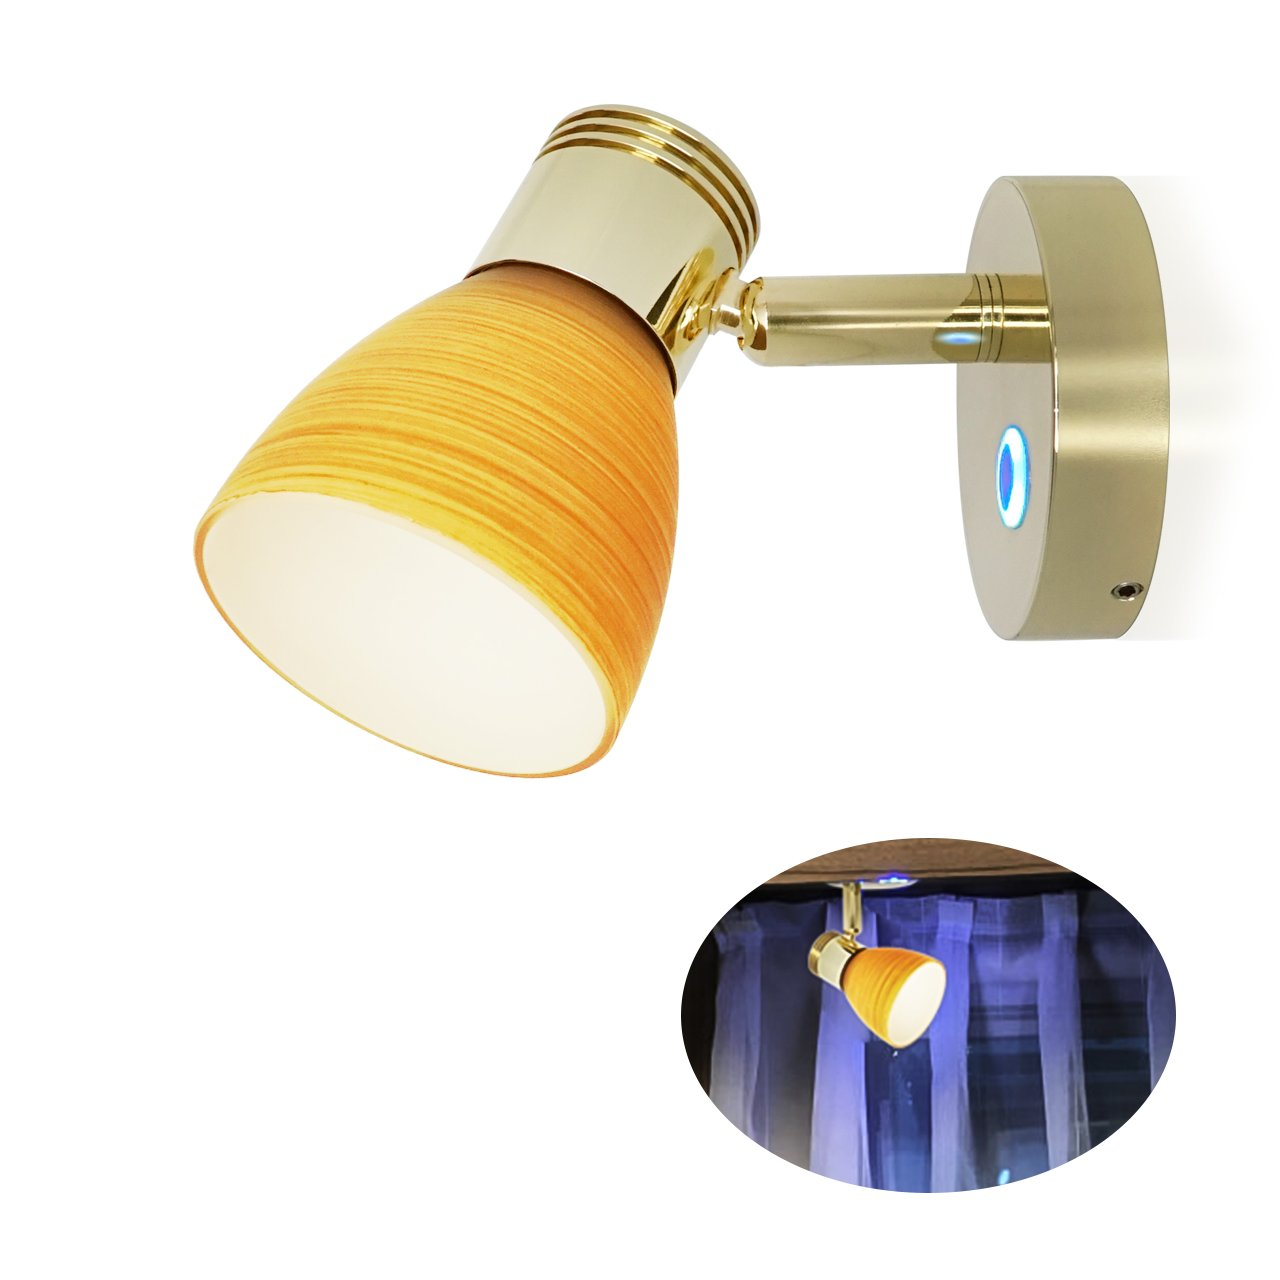 RV 12V Warm White Reading Light - Camper Berth Directional Interior bracket Lamp, Teak Color Glass Lampshade, Inbuild Touch Adjustable Switch Has Blue Night Decor Lighting, Small Base, Surface mount